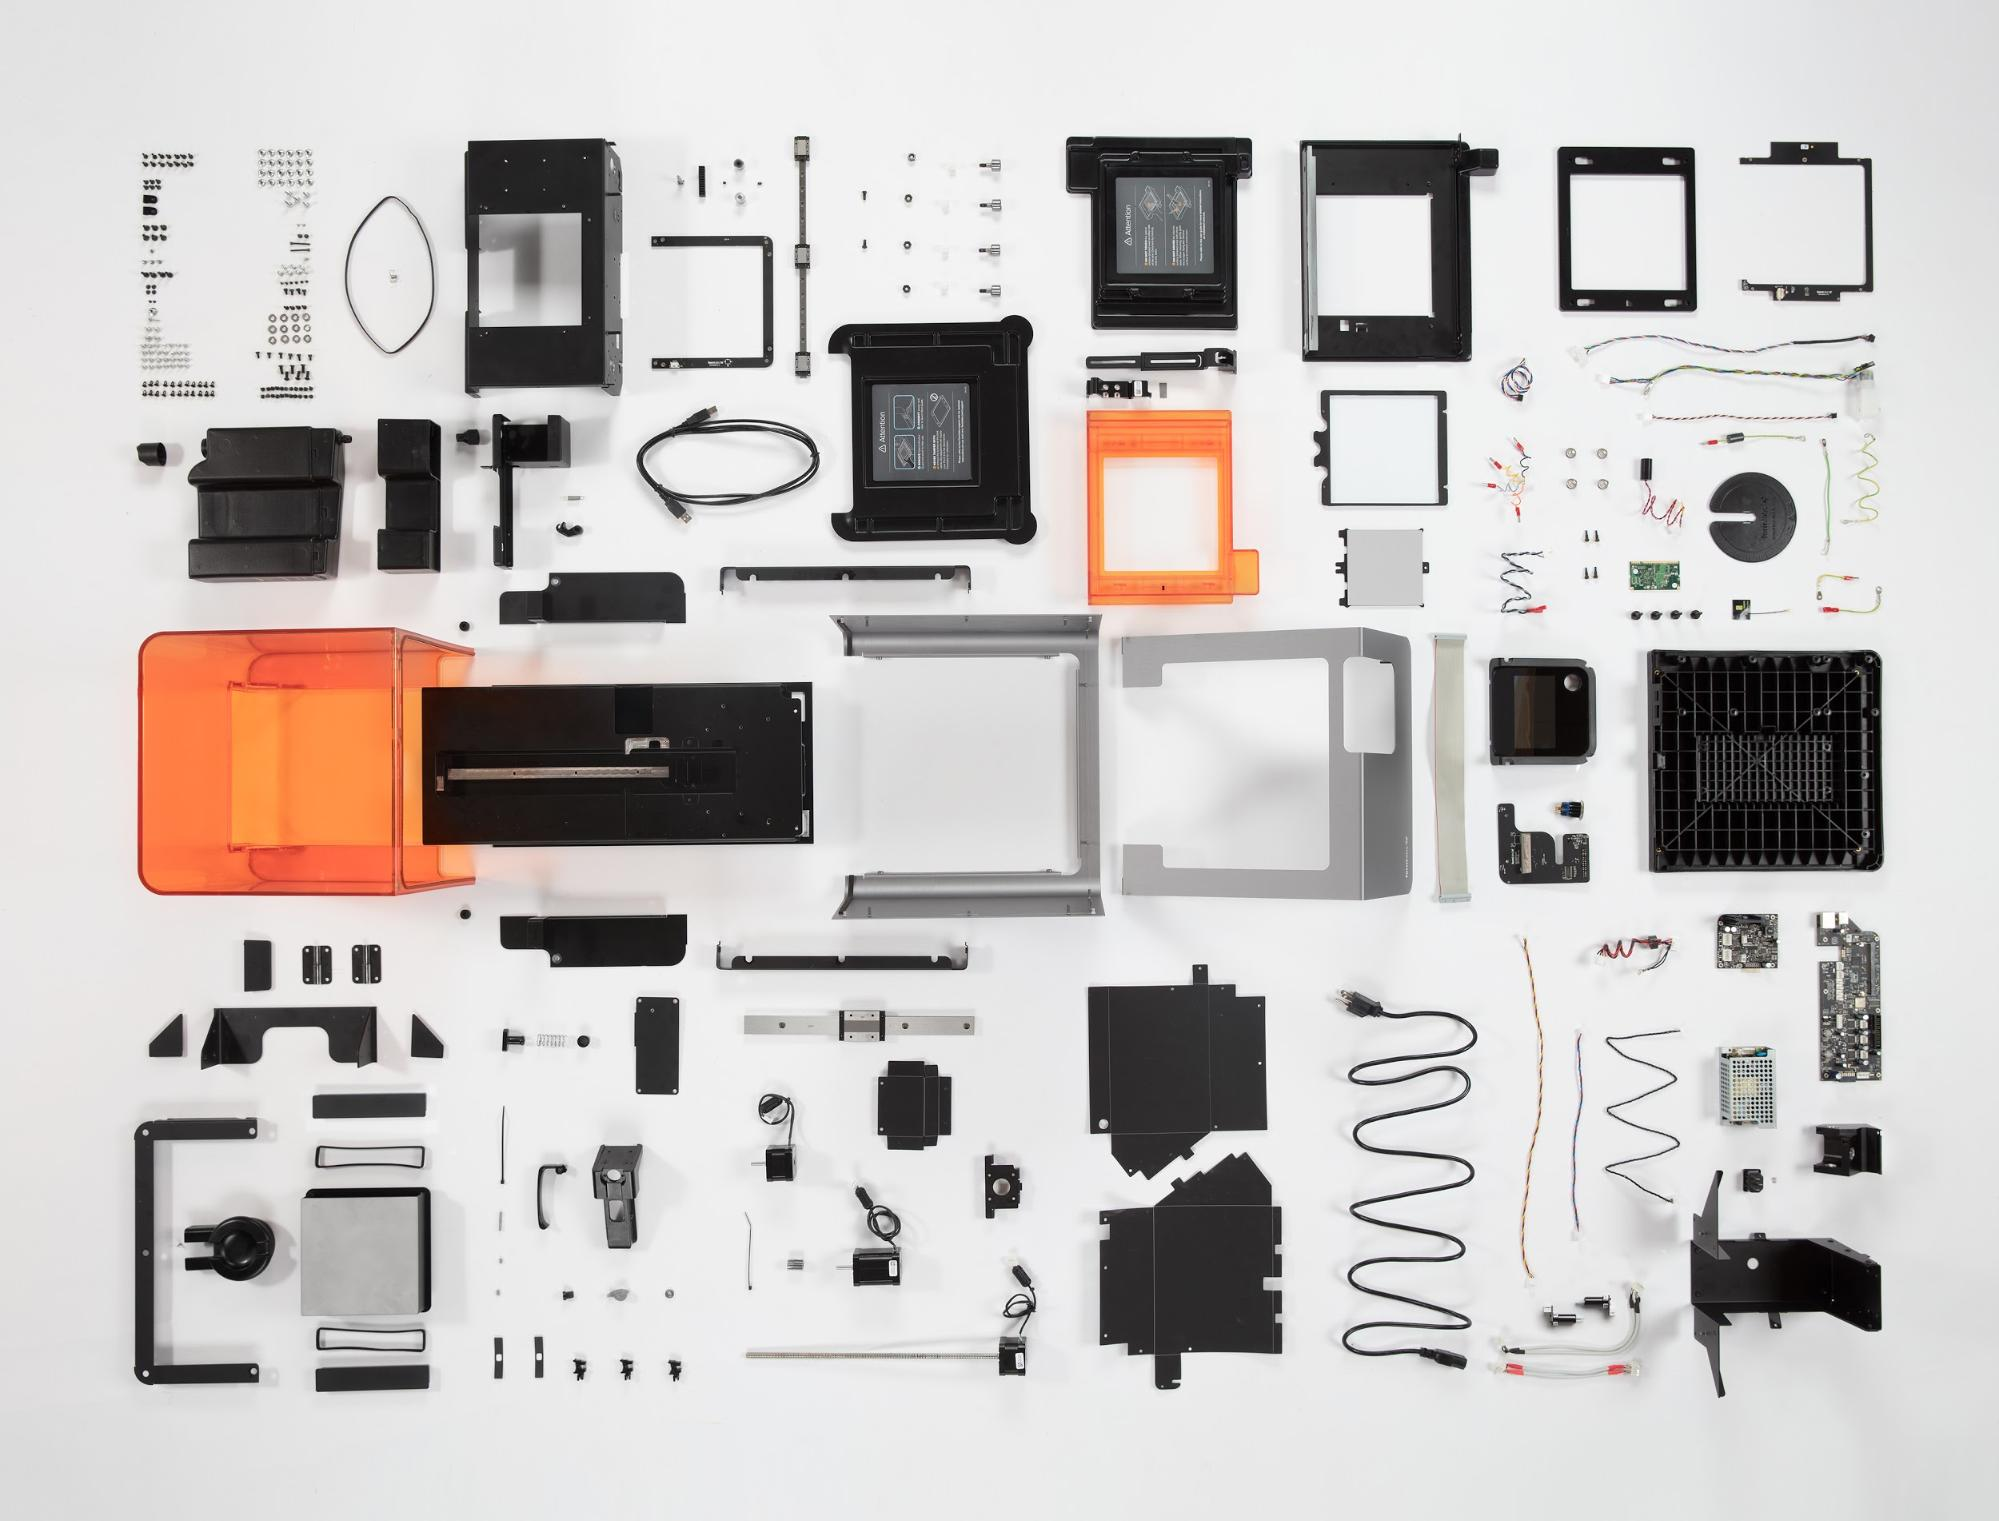 Parts and components of the Form 2 stereolithography 3D printer